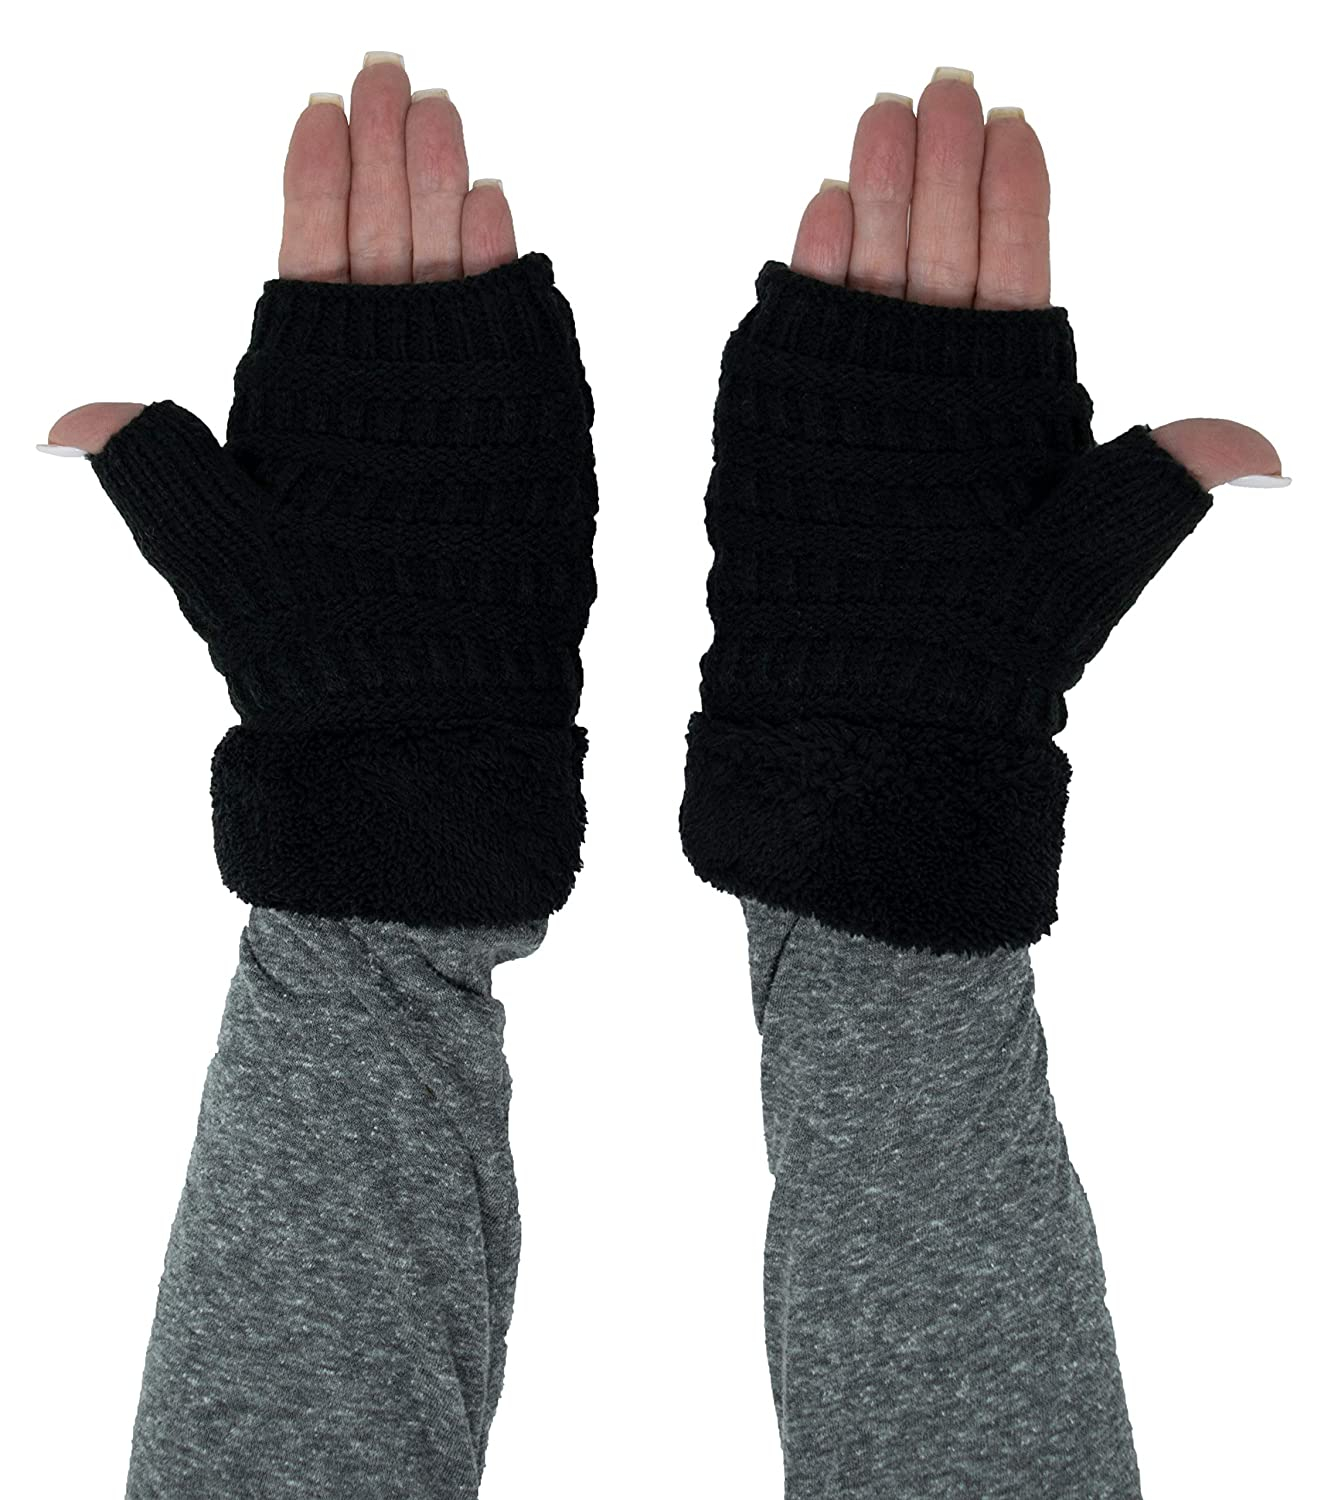 FG-6020a-06 Fingerless Fuzzy Lined Knit Glove: Black at Amazon Womens Clothing store: